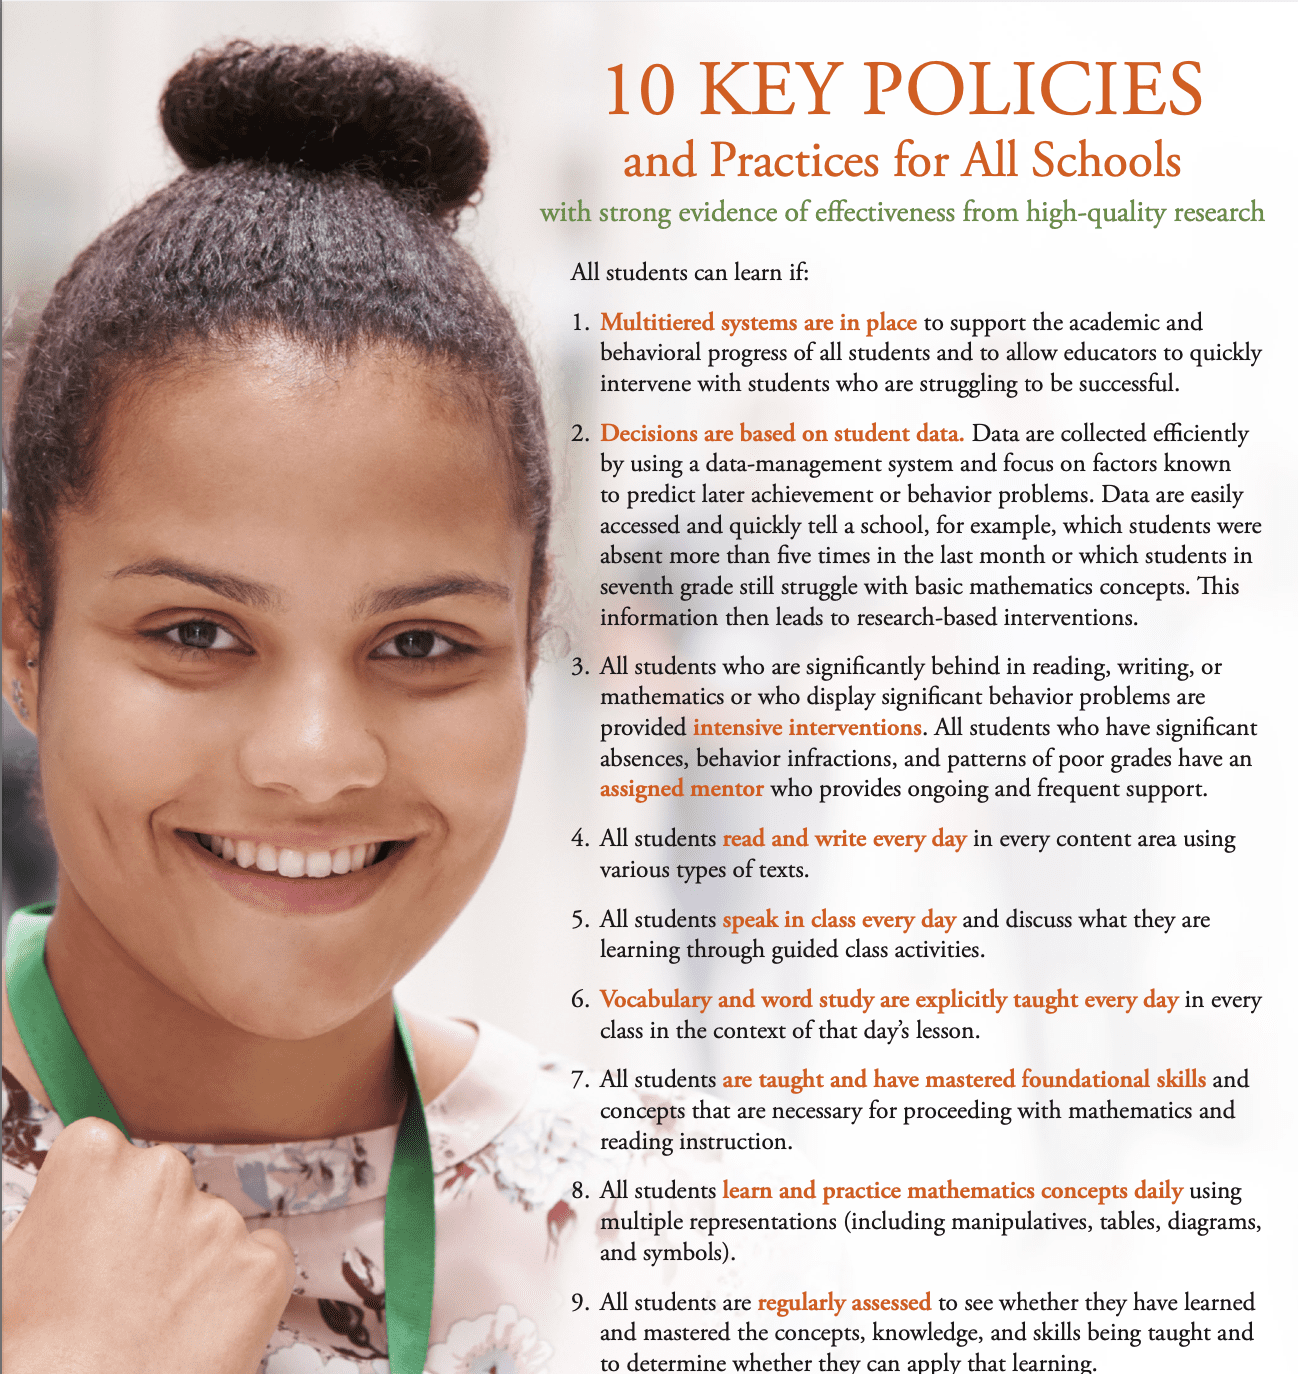 Cover of resource with key policies and photo of young Black girl